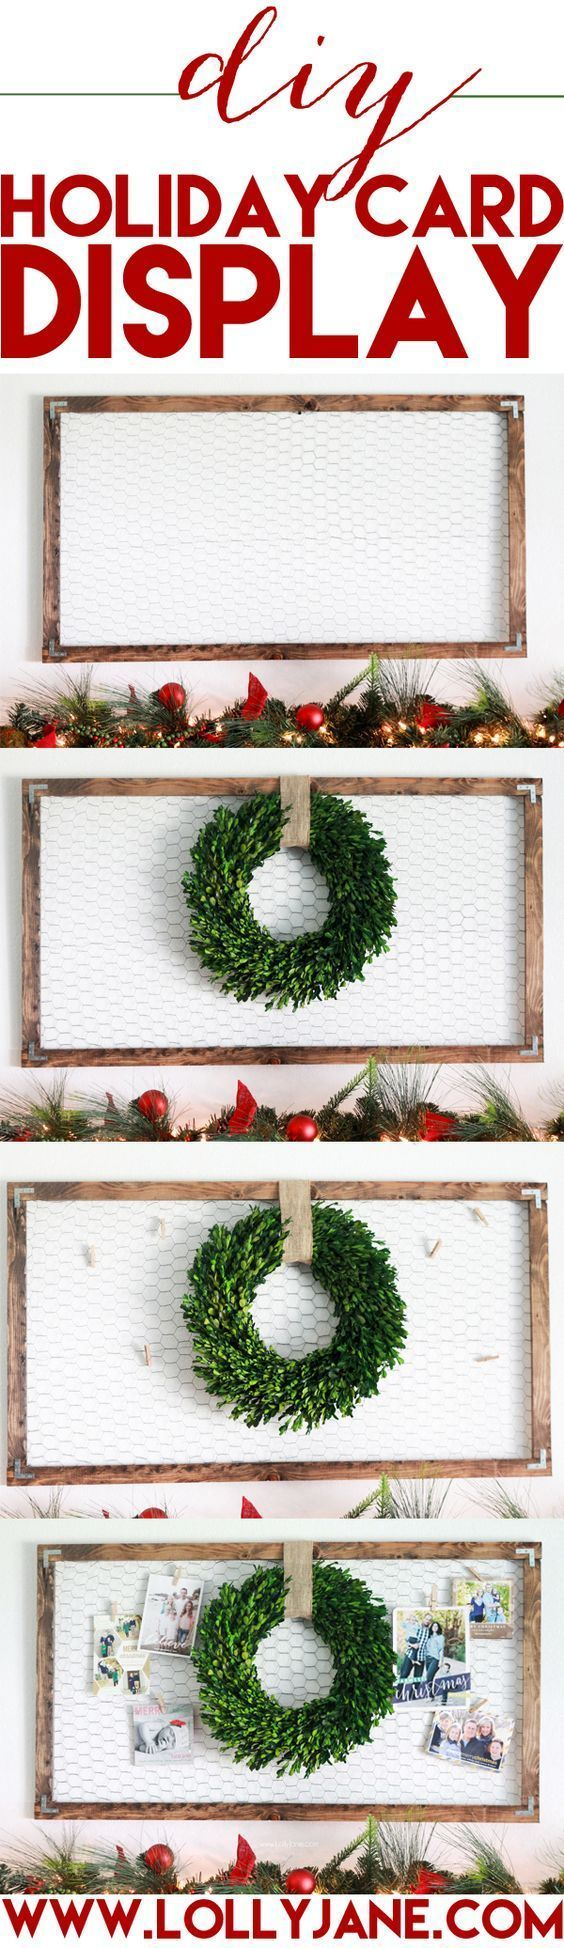 And Simple Christmas Center Decor Ideas Likewise 30 Eye Catching - Make a diy christmas card holder to display your loved ones christmas cards you receive so many darling ideas and styles to choose from